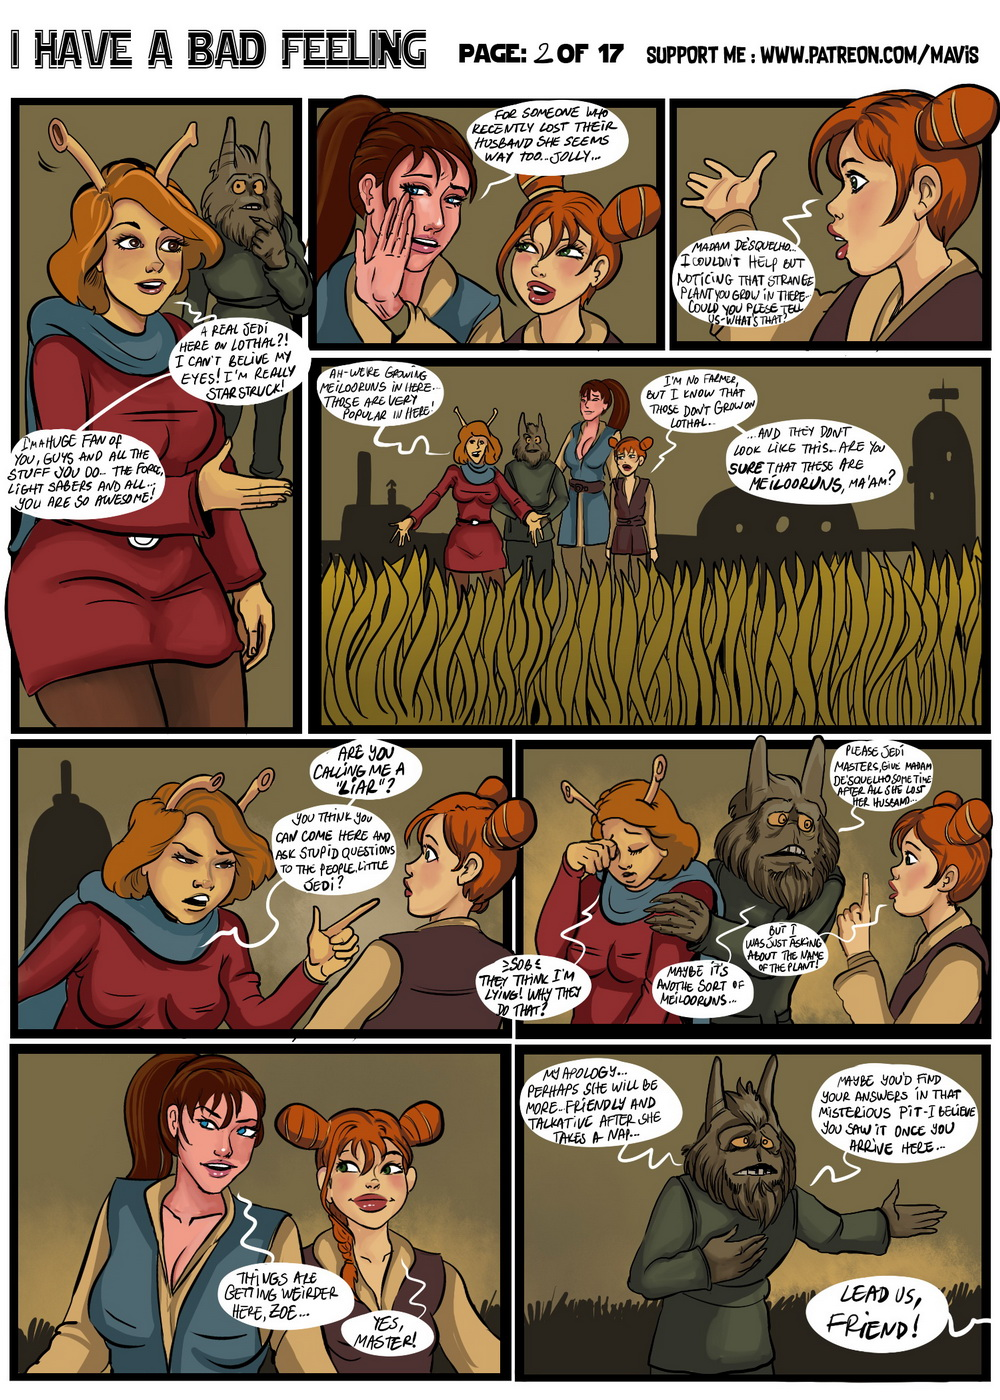 I have a bad feeling - page2